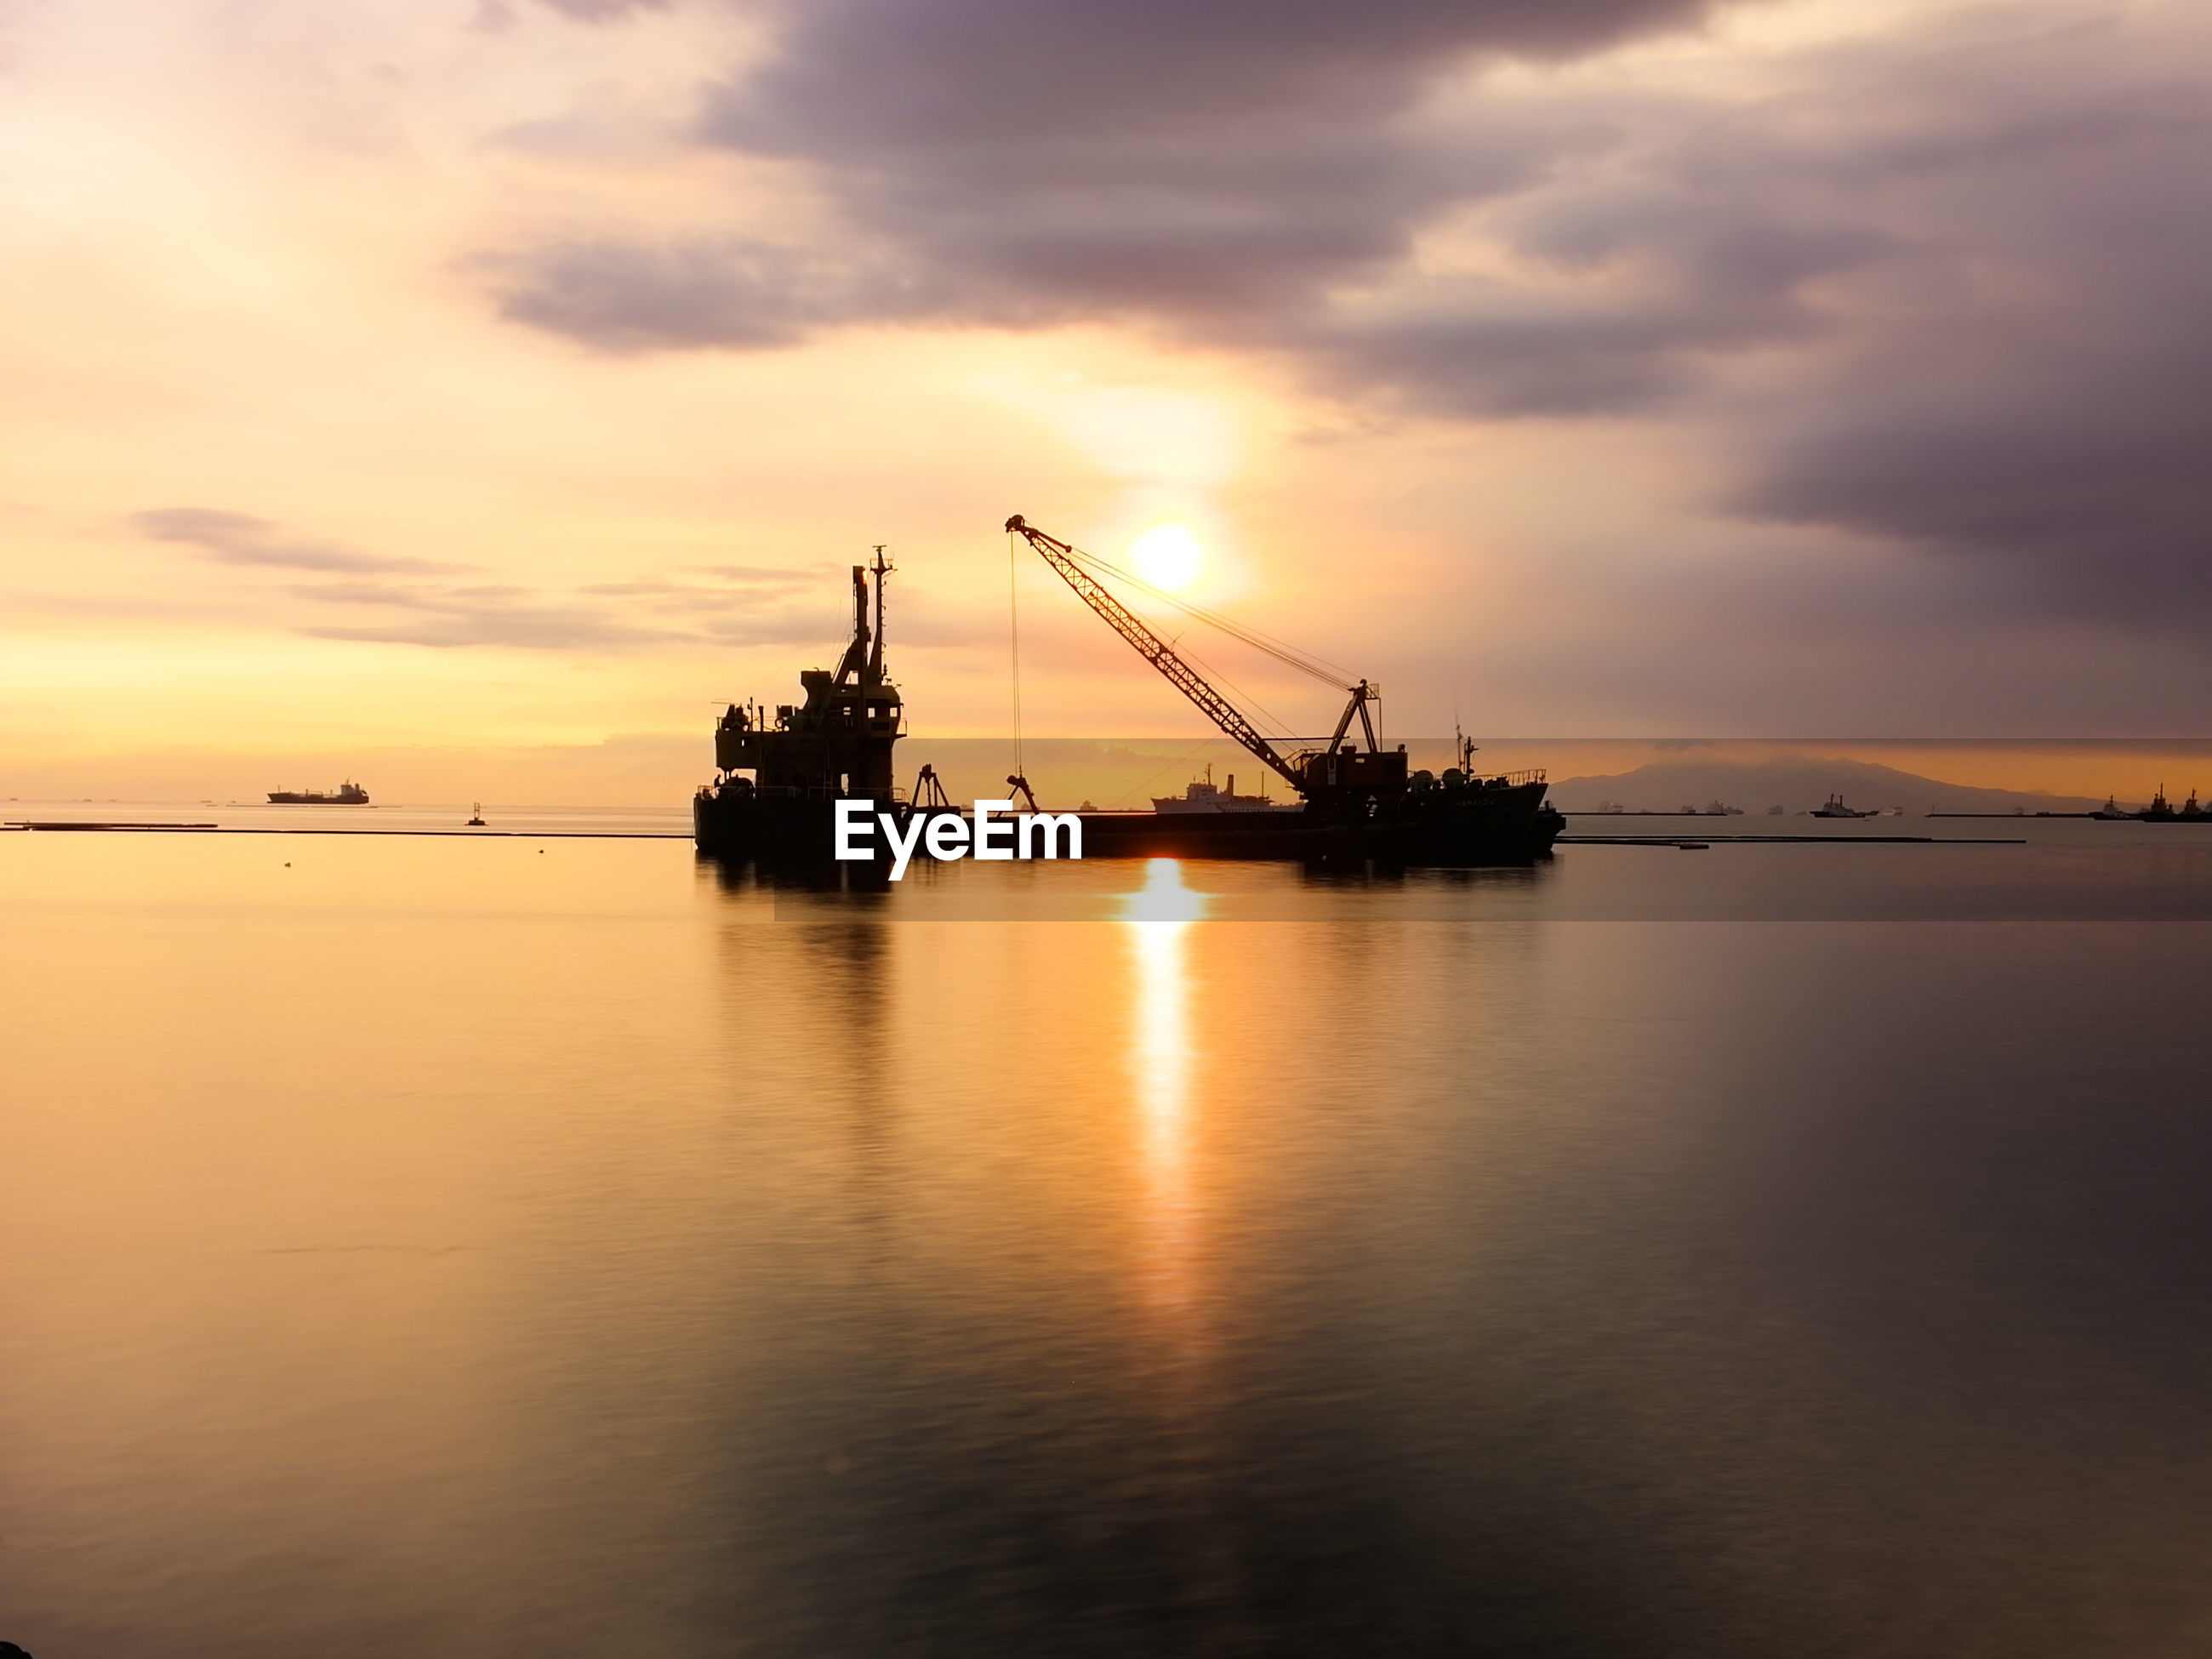 SILHOUETTE OF CRANES AT COMMERCIAL DOCK AGAINST SKY DURING SUNSET